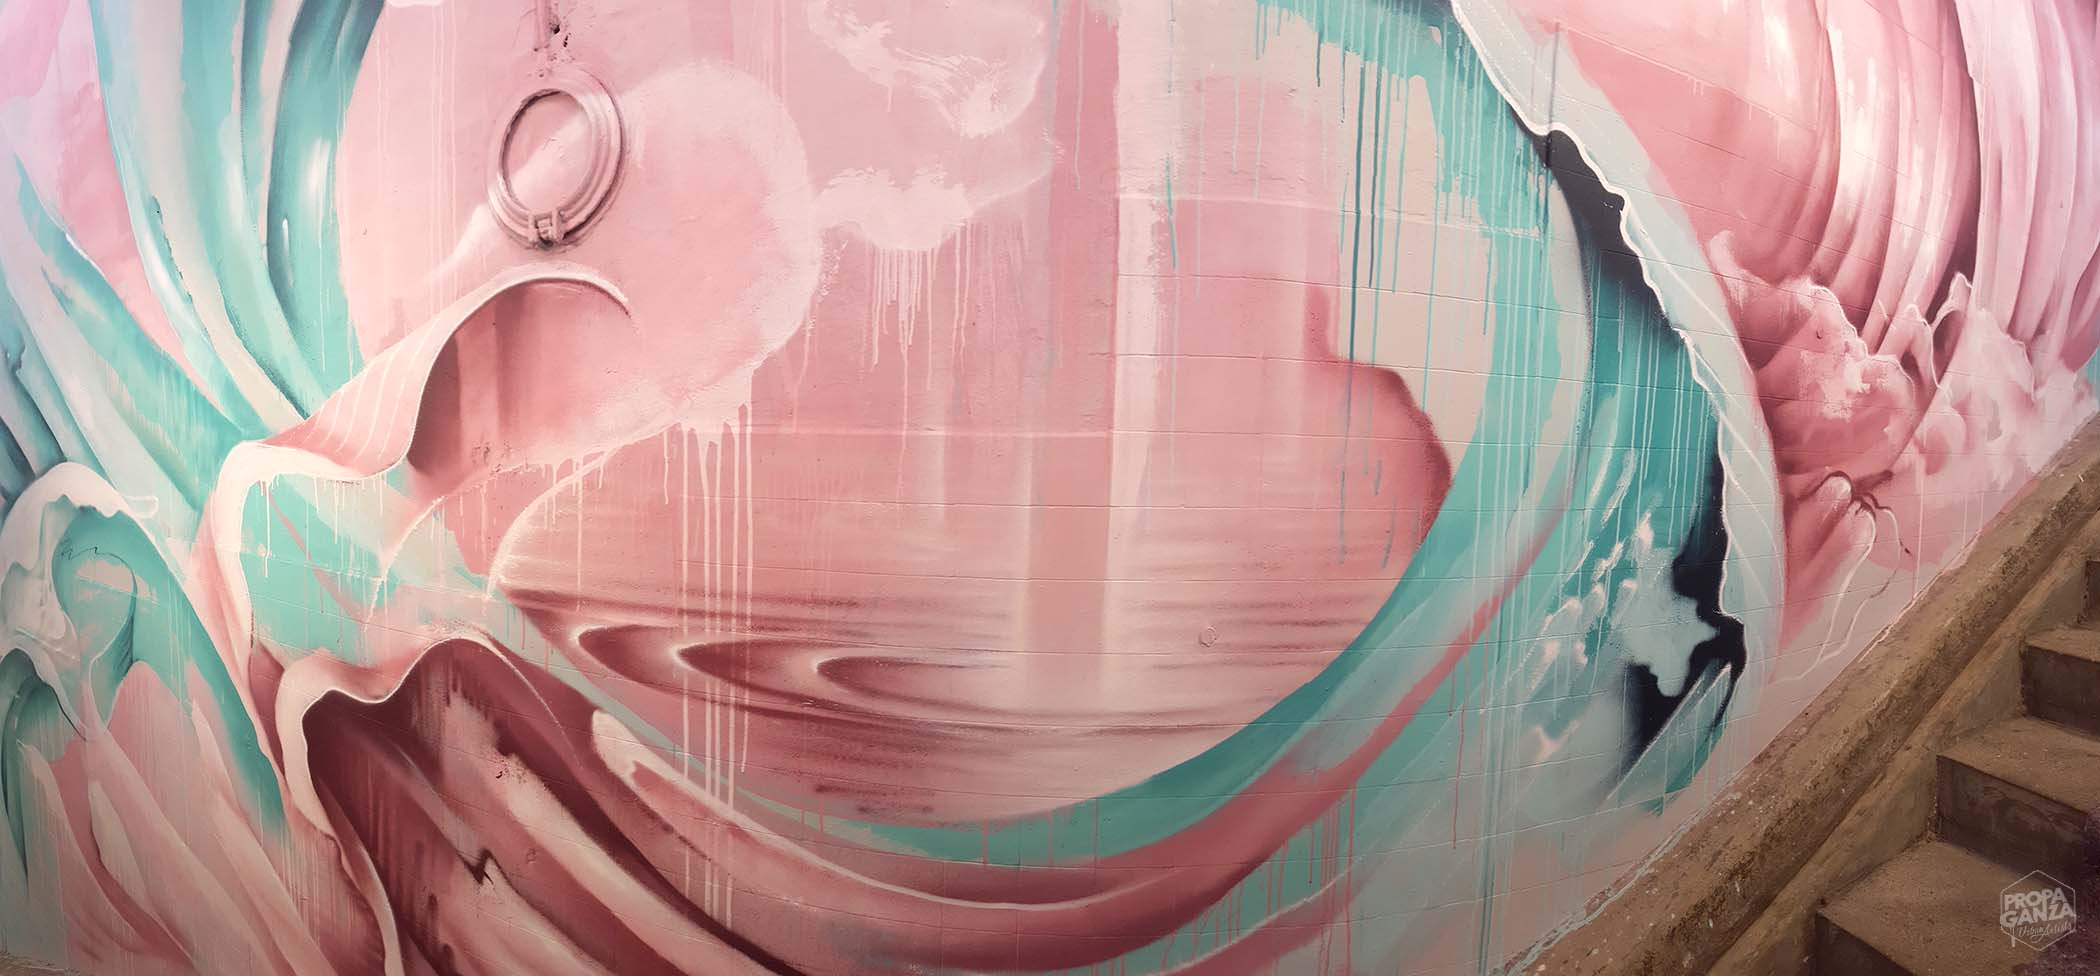 https://www.propaganza.be/wp-content/uploads/2019/04/adrien-roubens-abstract-paint-graffiti-street-art-vegetal-wave-tunnel-propaganza-pink-sixties-60-contemporary-7.jpg